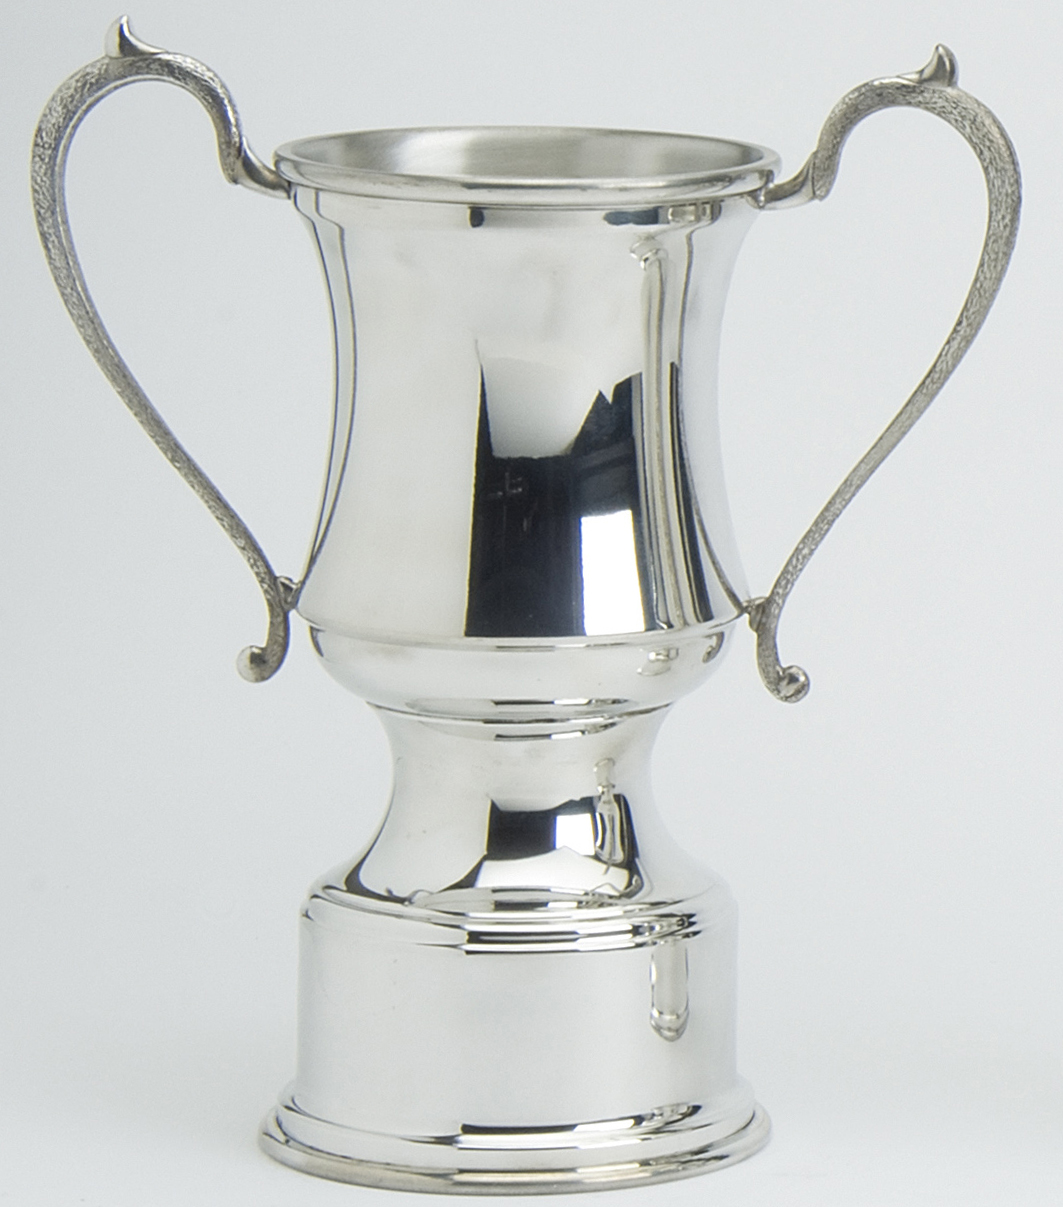 Pewter Trophies Traditional Plain Four sizes.The Plain Traditional Trophies are available in four different sizes 6, 8, 10, 12 inches and are presented in a box.